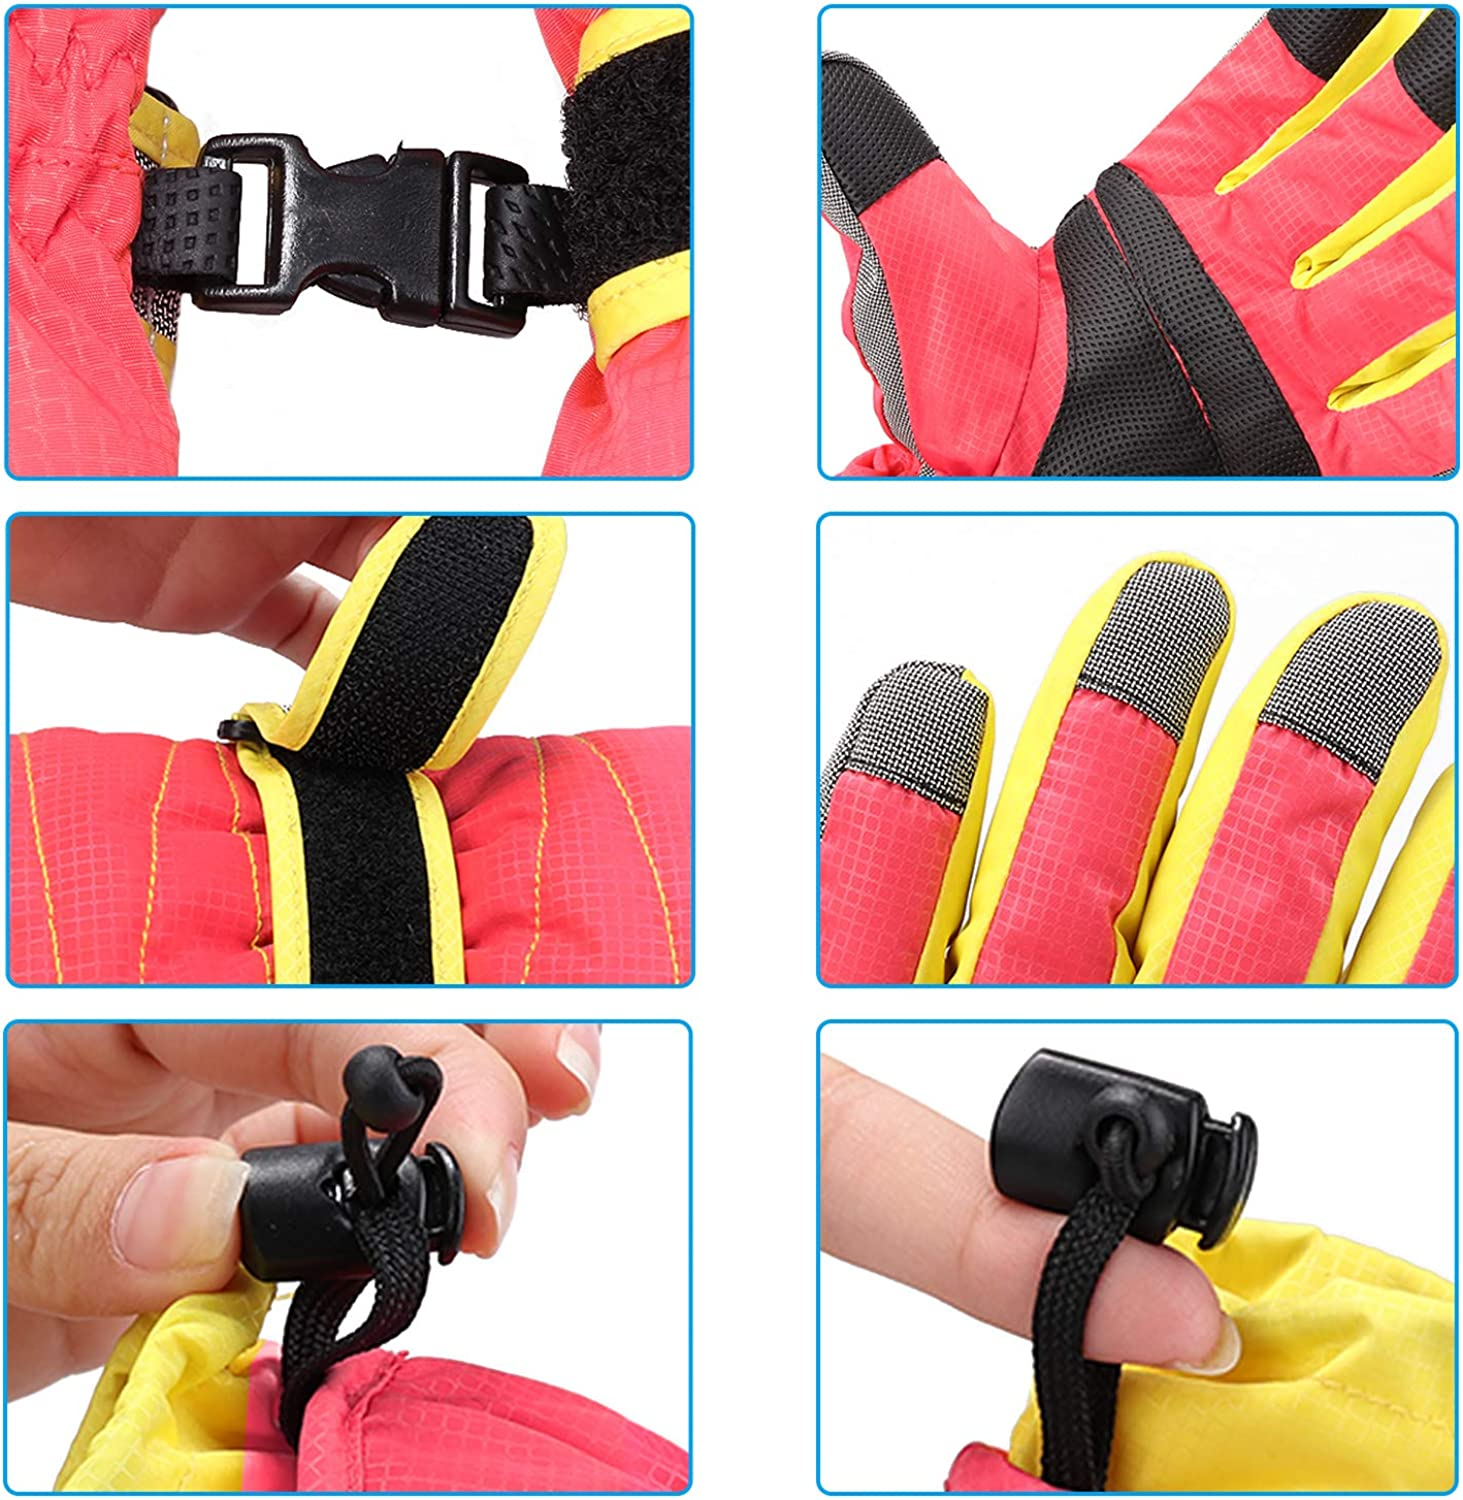 MAGARROW Winter Gloves Warm Windproof Outdoor Sports Glove For Teenagers and Men Women